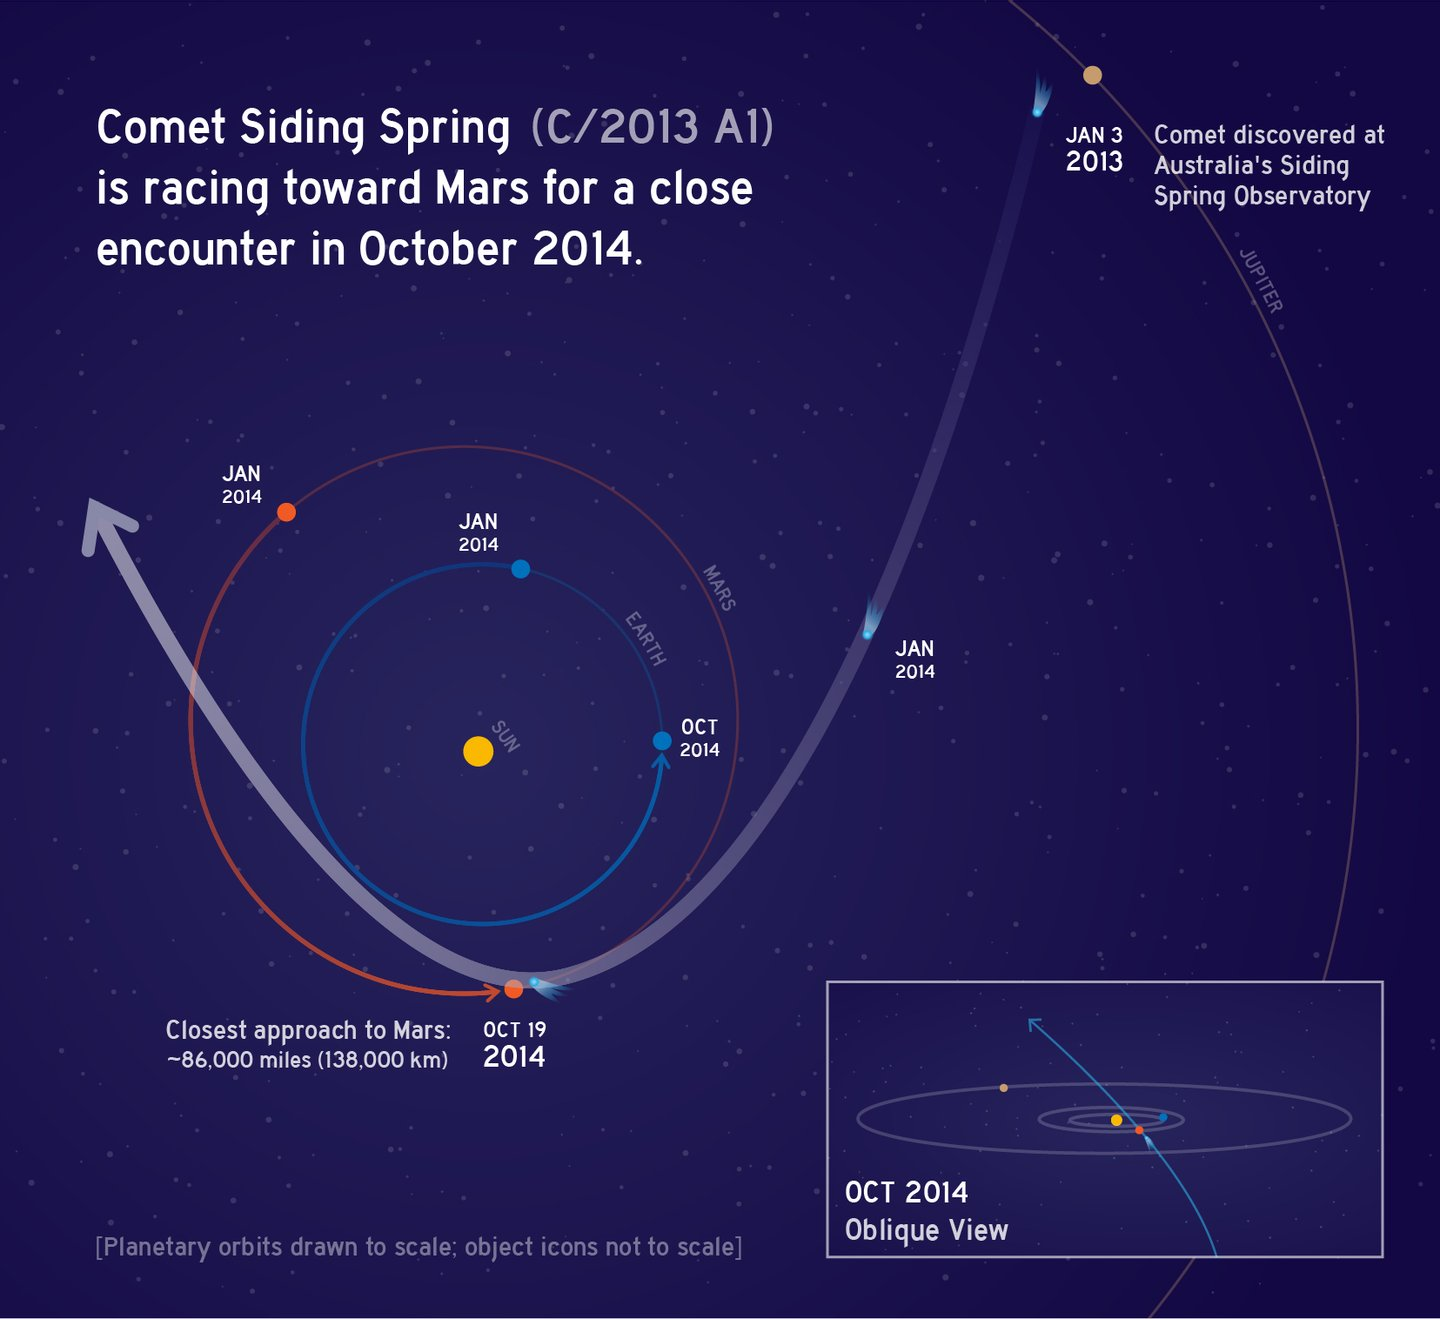 Oct2014CometSidingSpring_C2013A1-full_NASA